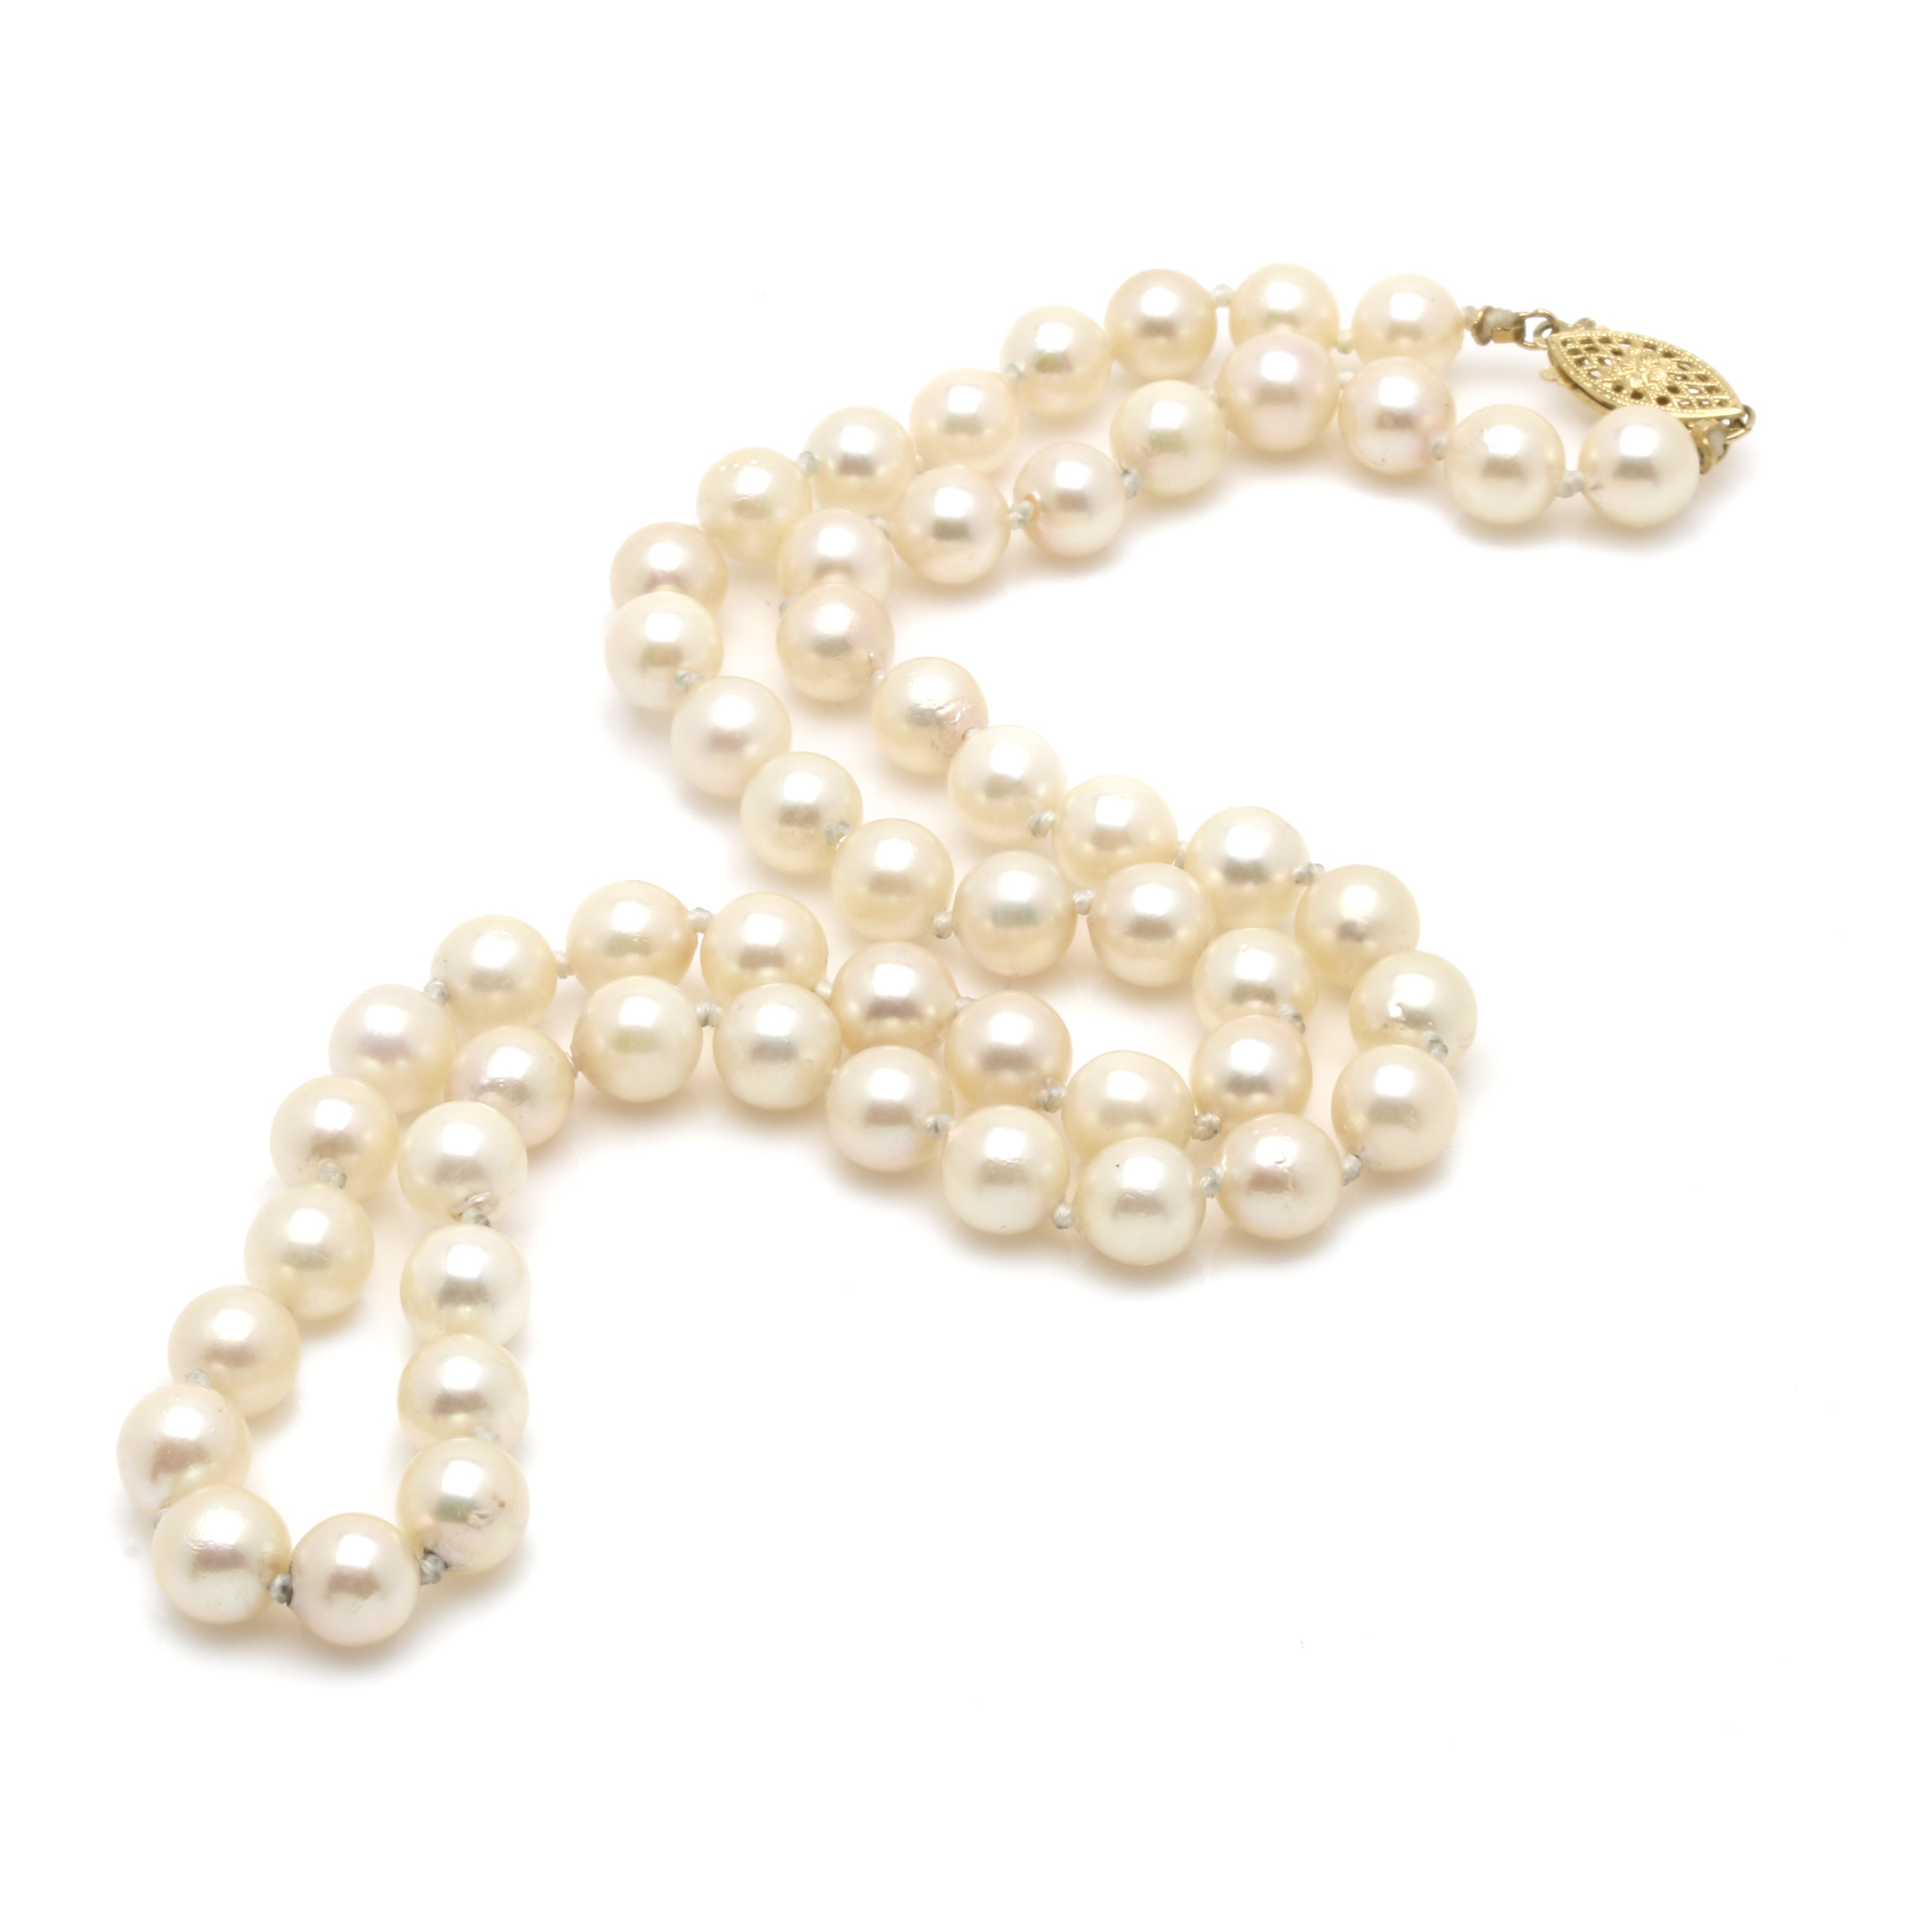 14K Yellow Gold Cultured Pearl Necklace